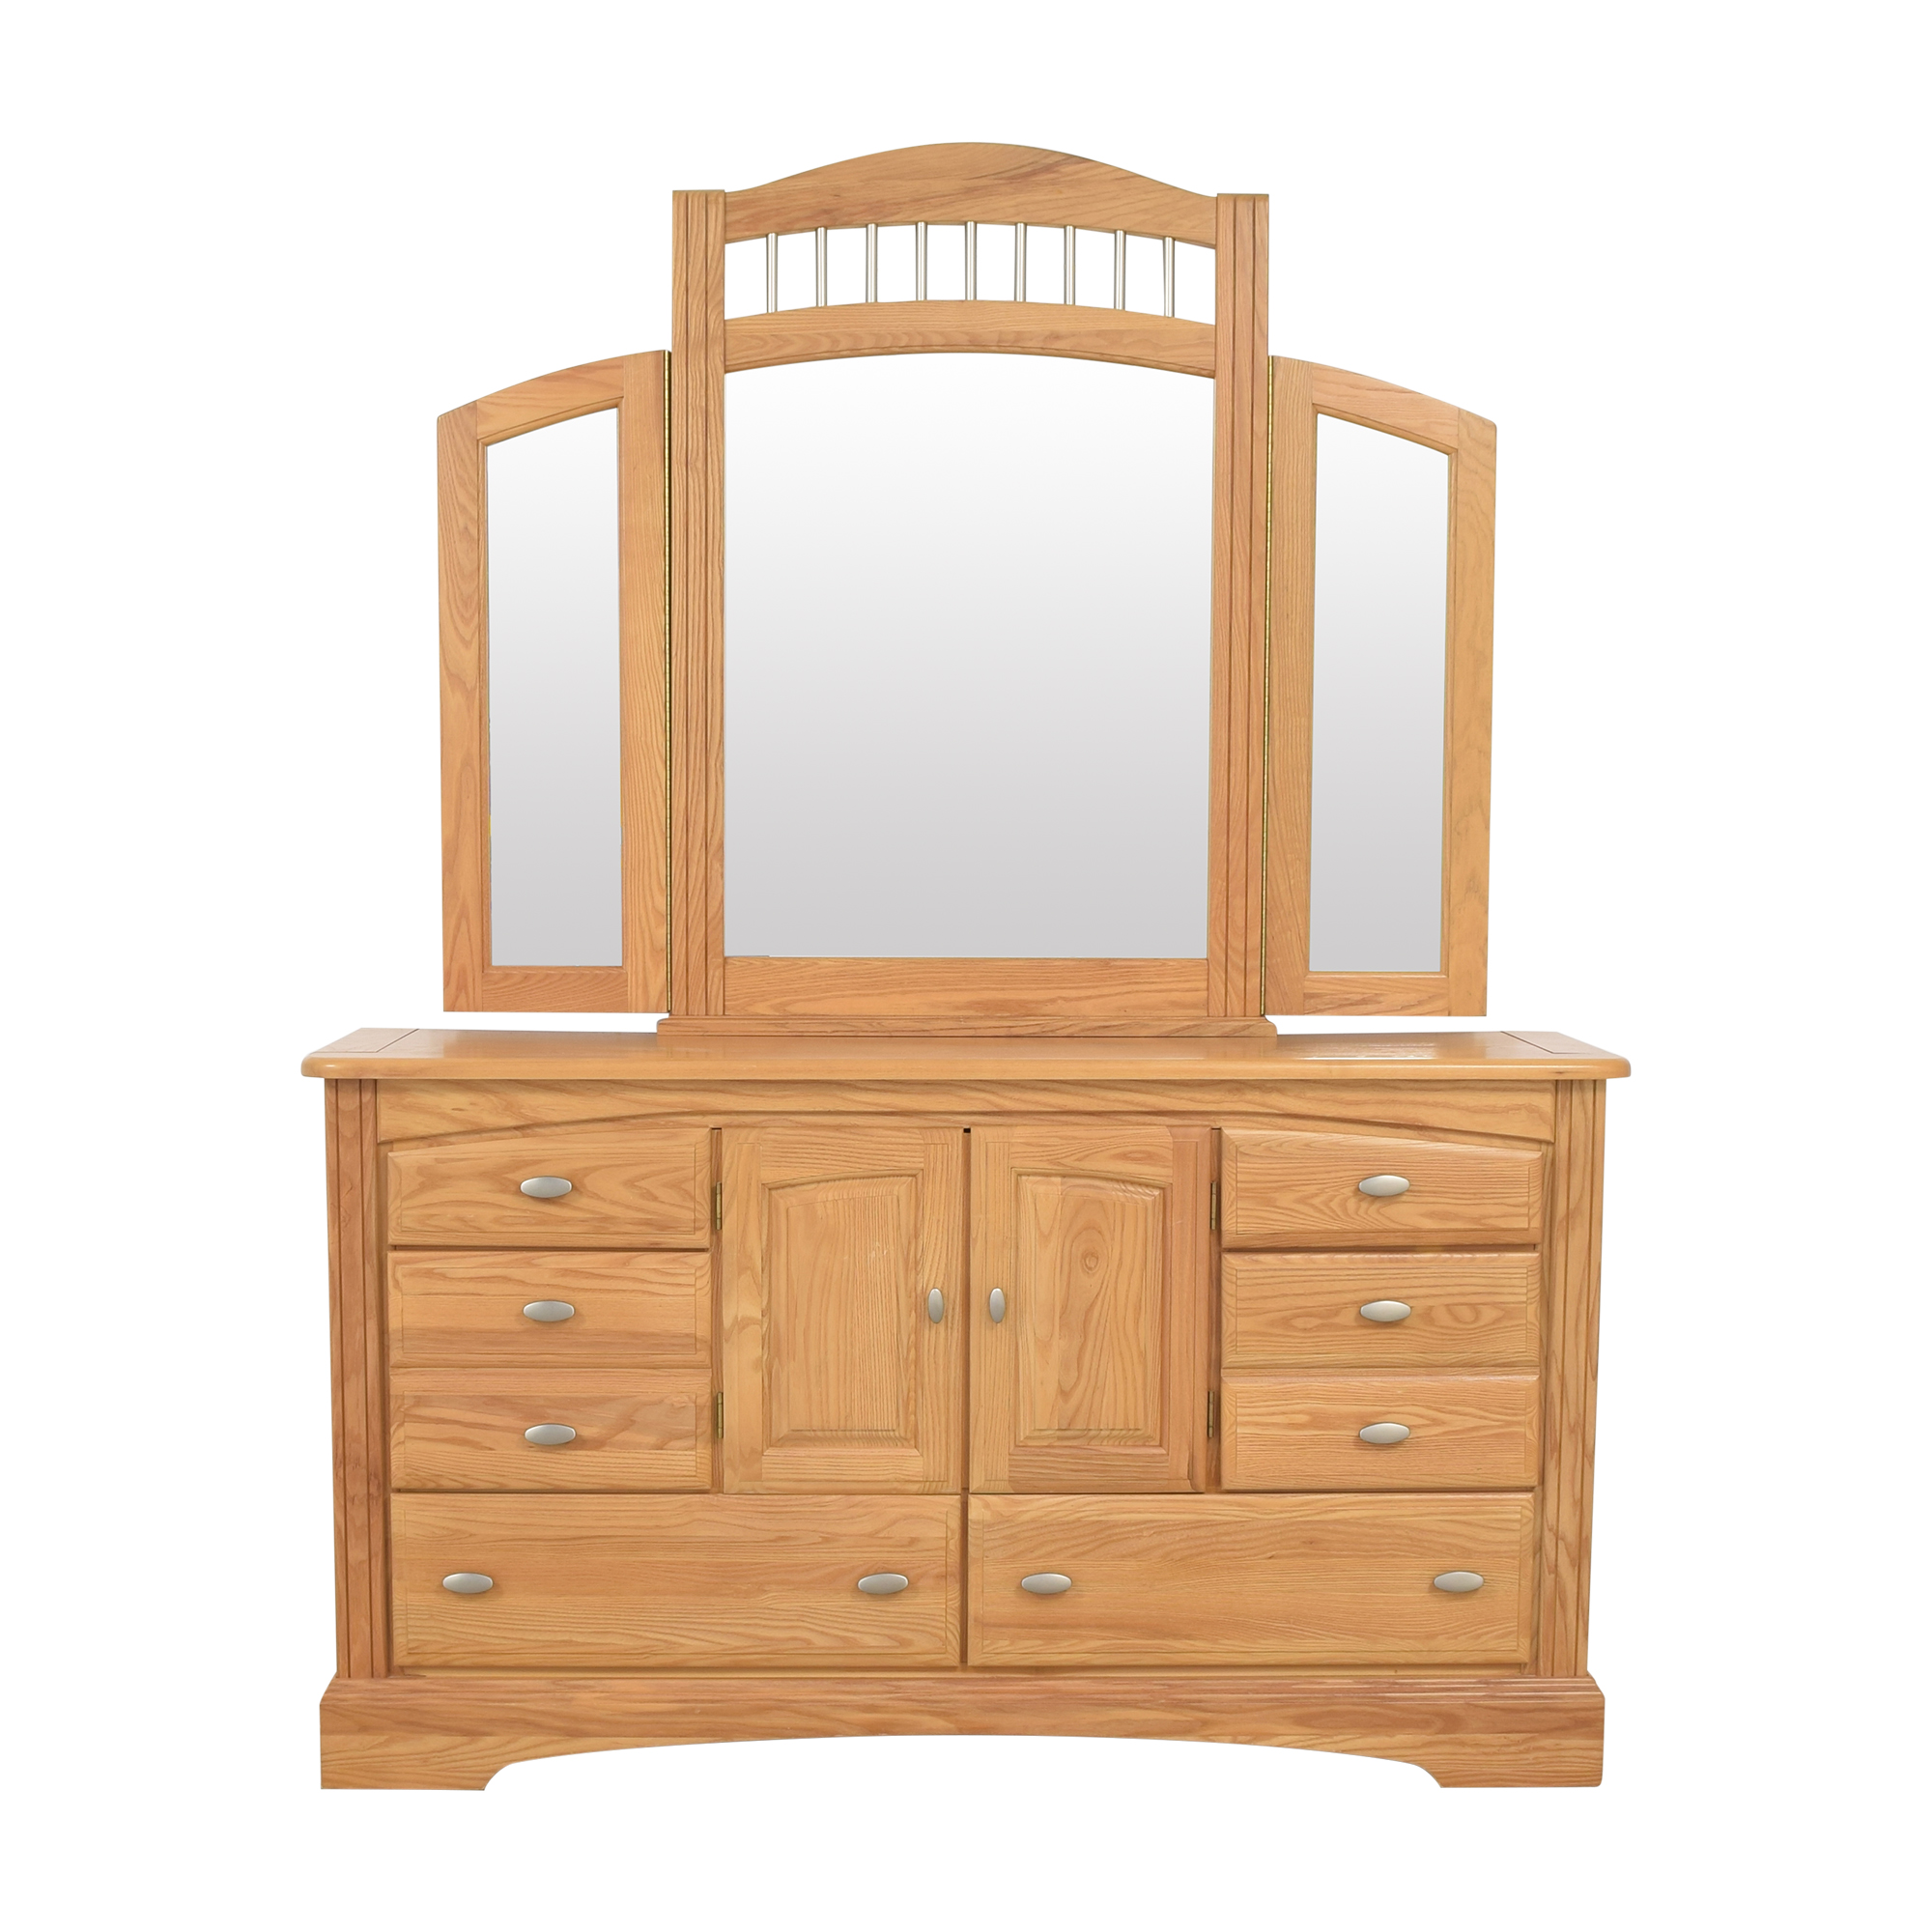 buy Kincaid Furniture Kincaid Dresser with Mirror online